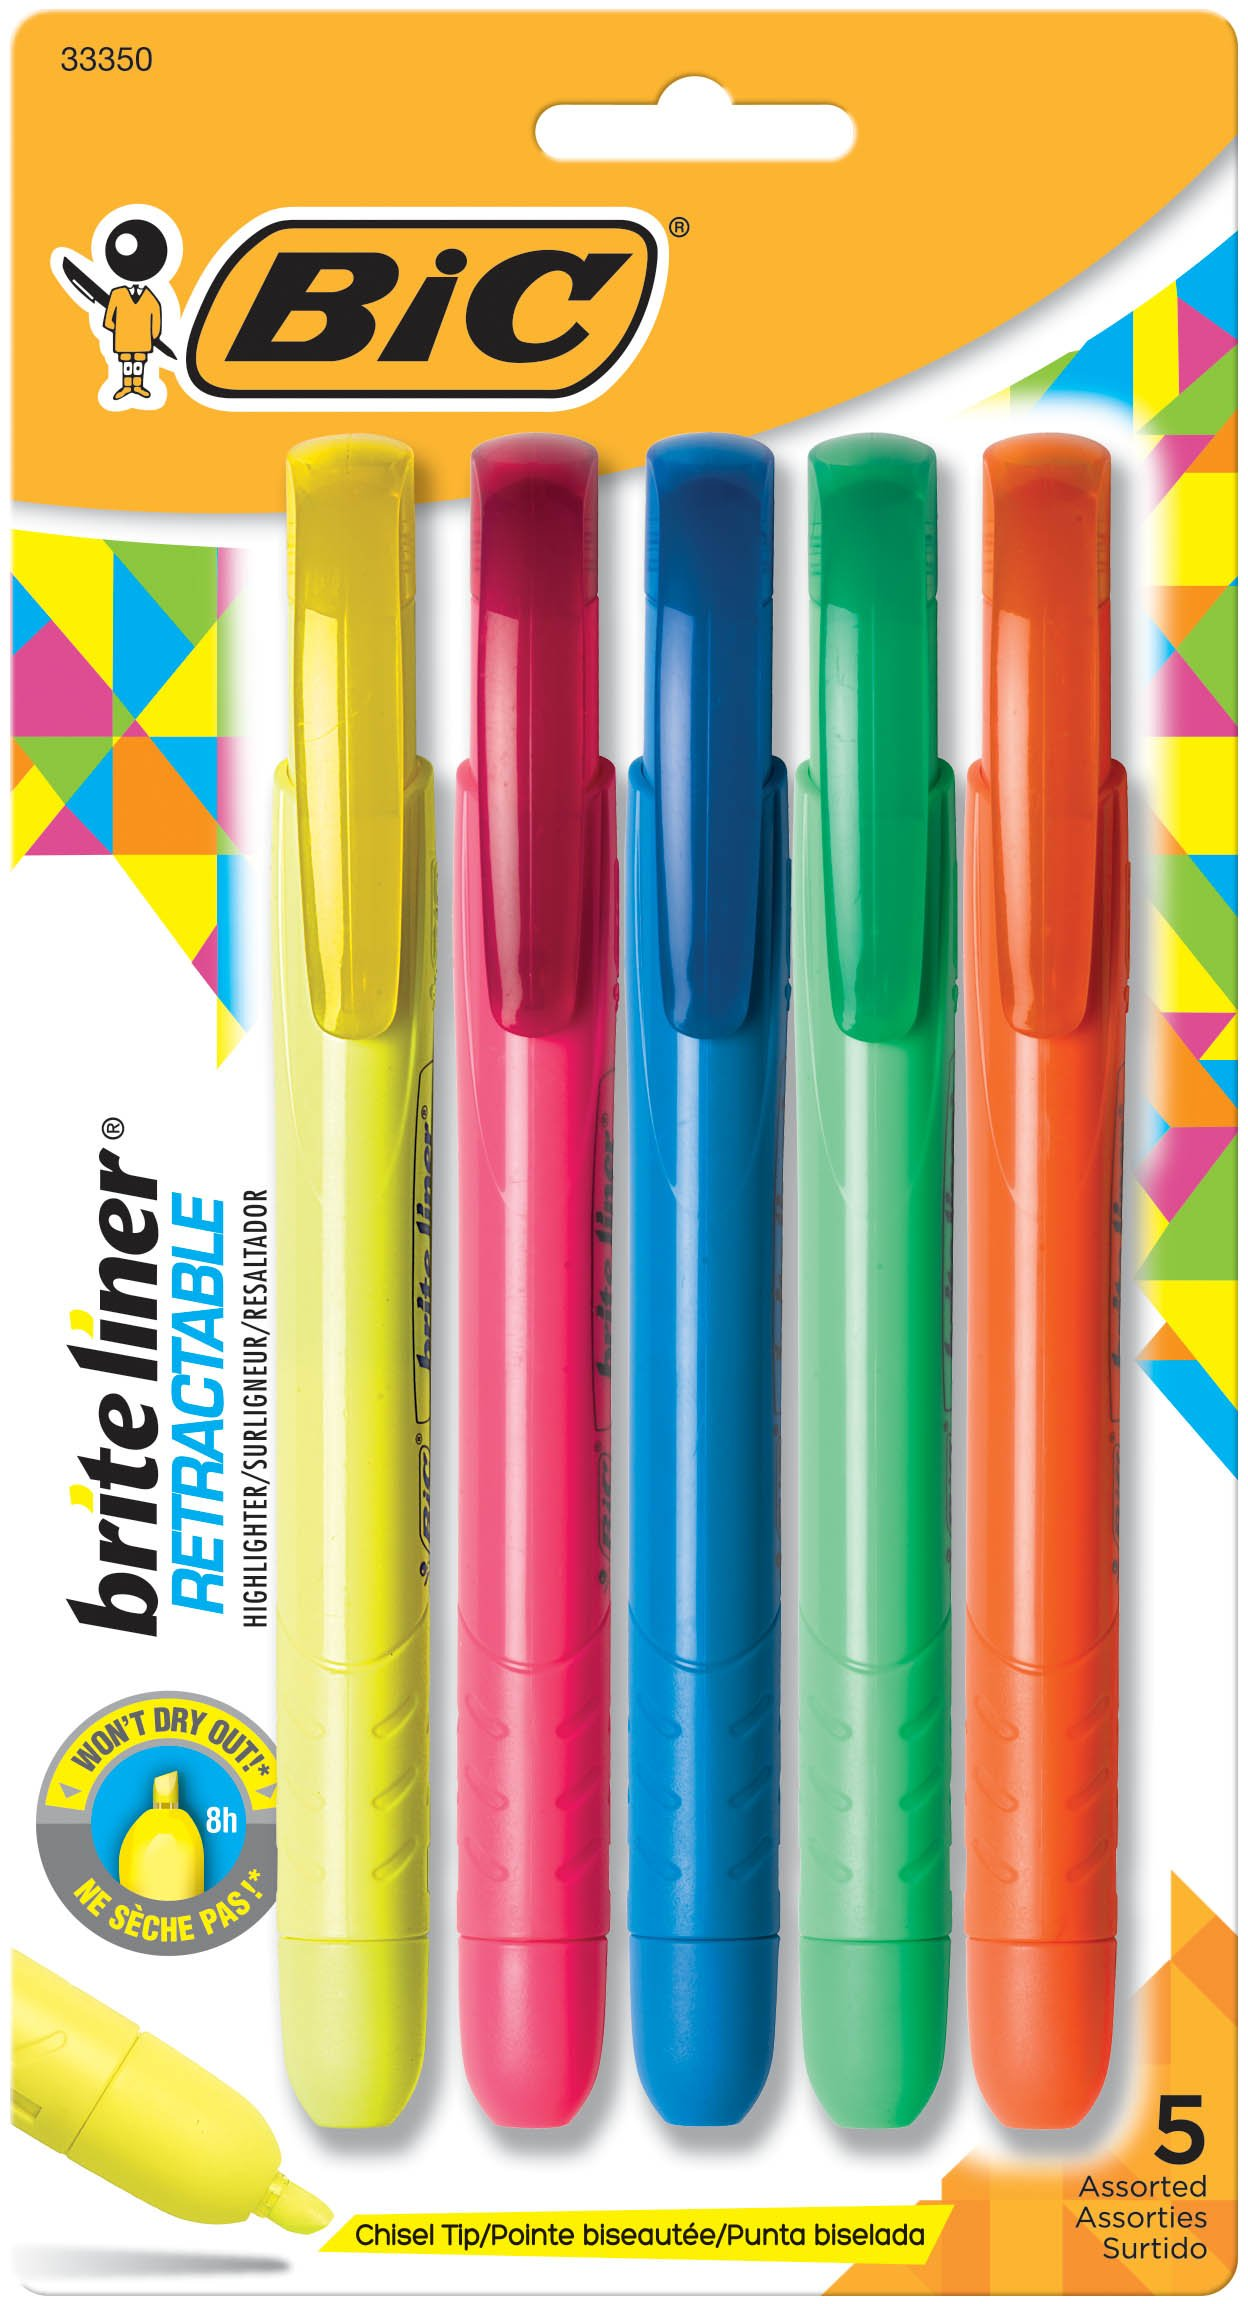 BIC Brite Liner Retractable Highlighter, Chisel Tip, Assorted Colors, 30-Count by BIC